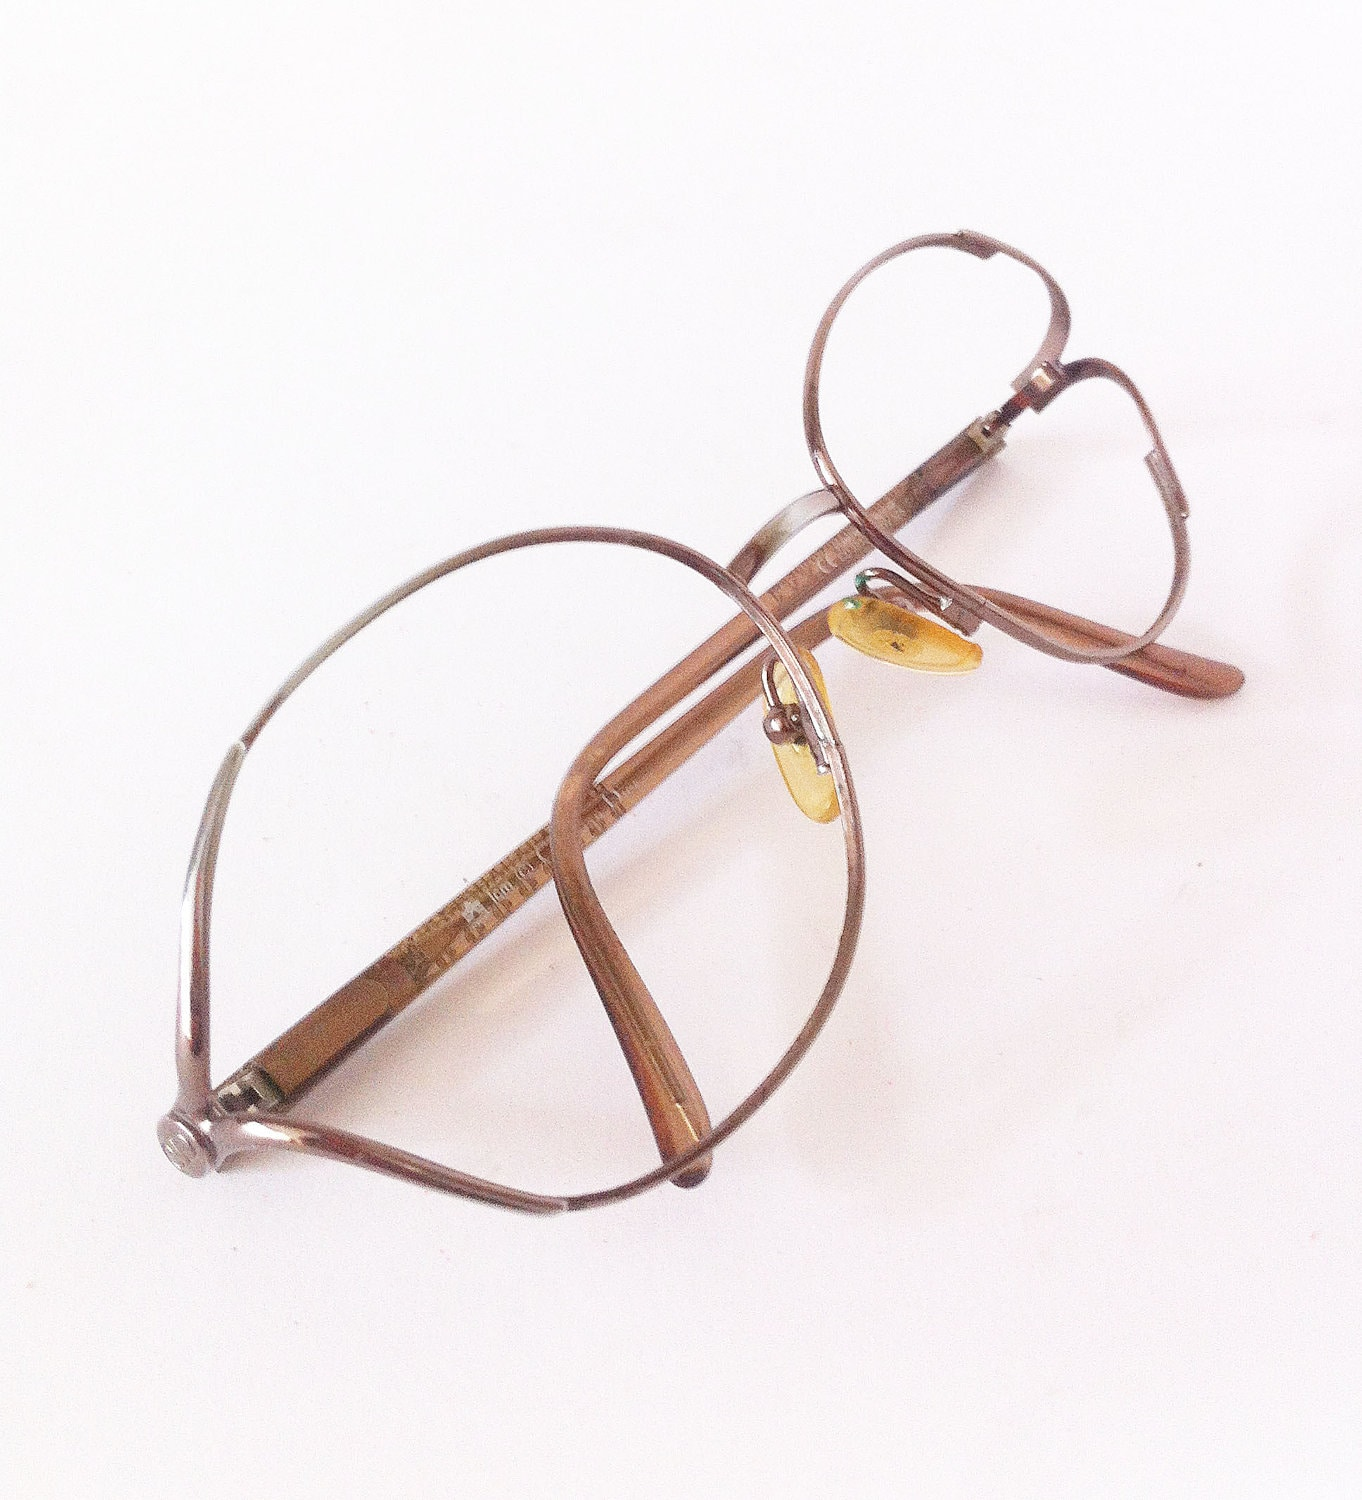 Glasses Metal Frame Dior : Christian Dior Vintage metal glasses by altmeansold on Etsy